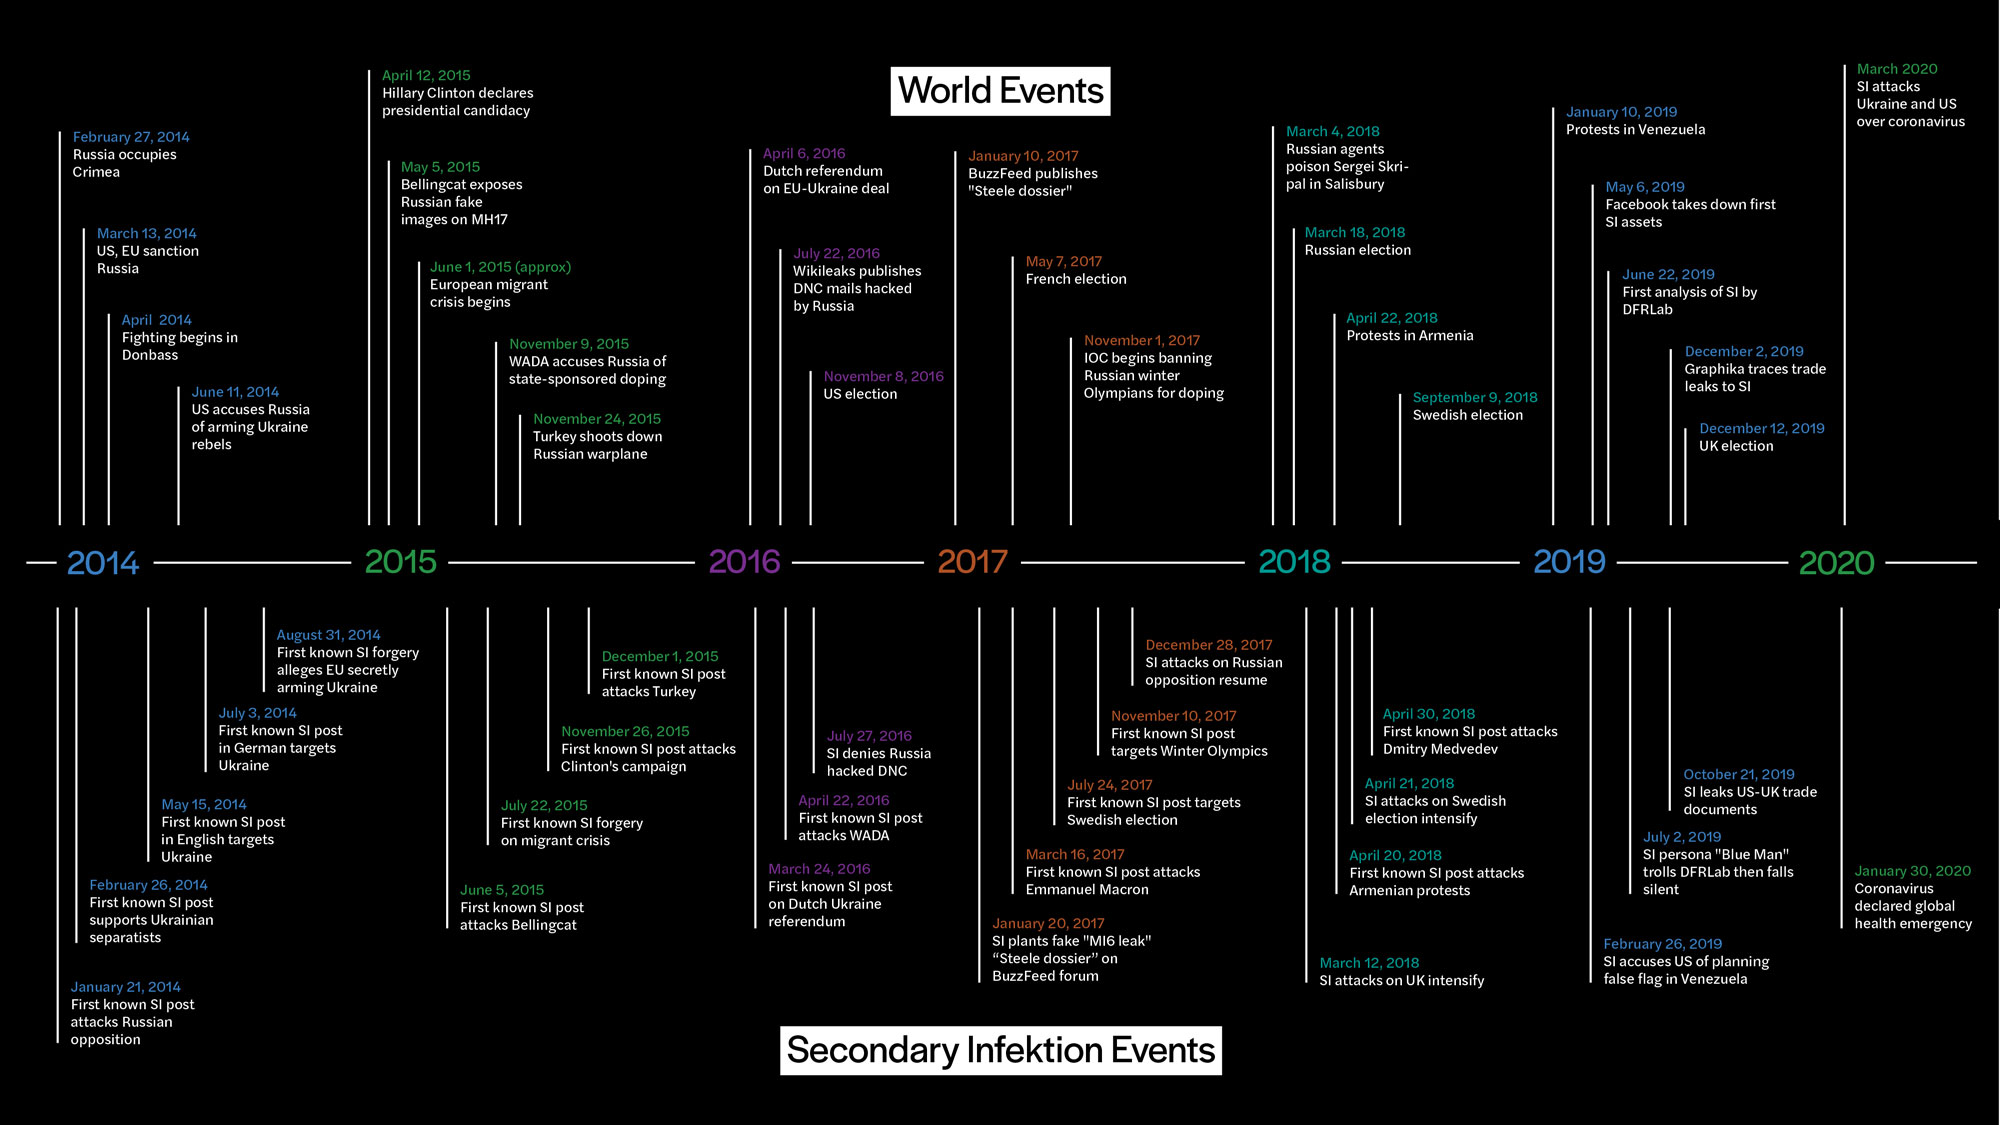 Secondary Infektion timeline graphic